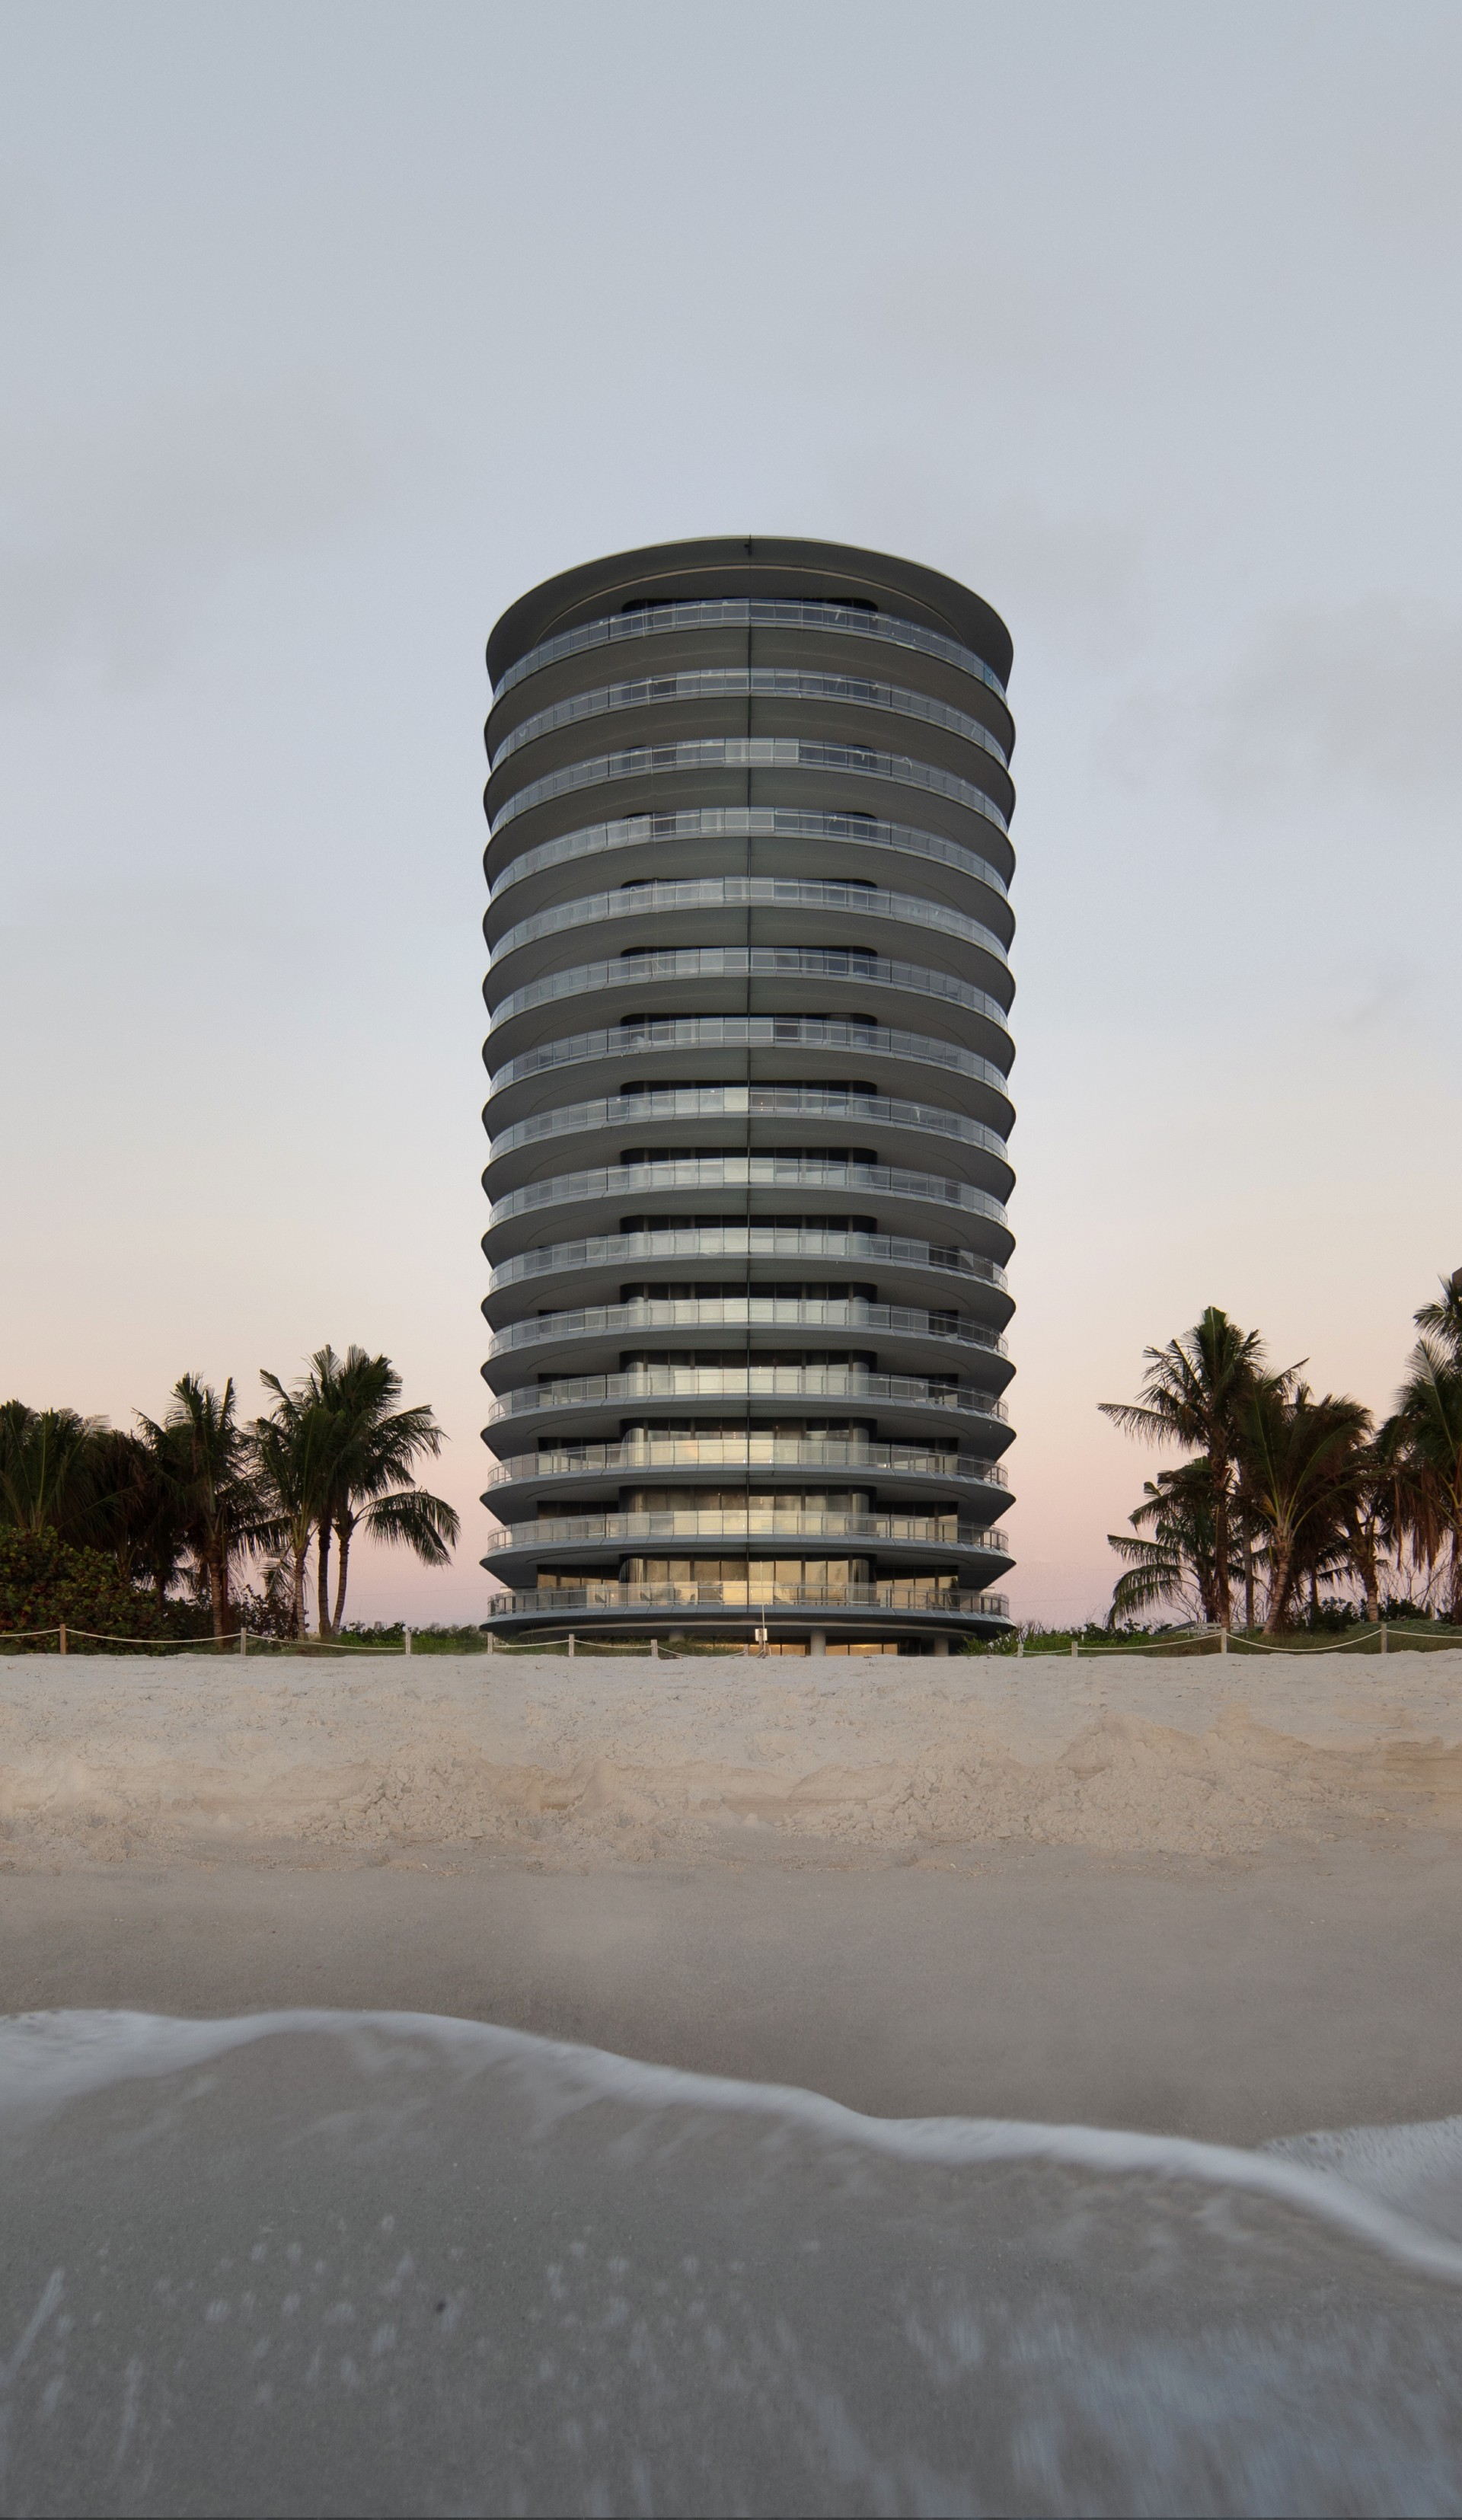 Renzo Piano Nato A renzo piano building workshop eighty seven park miami beach